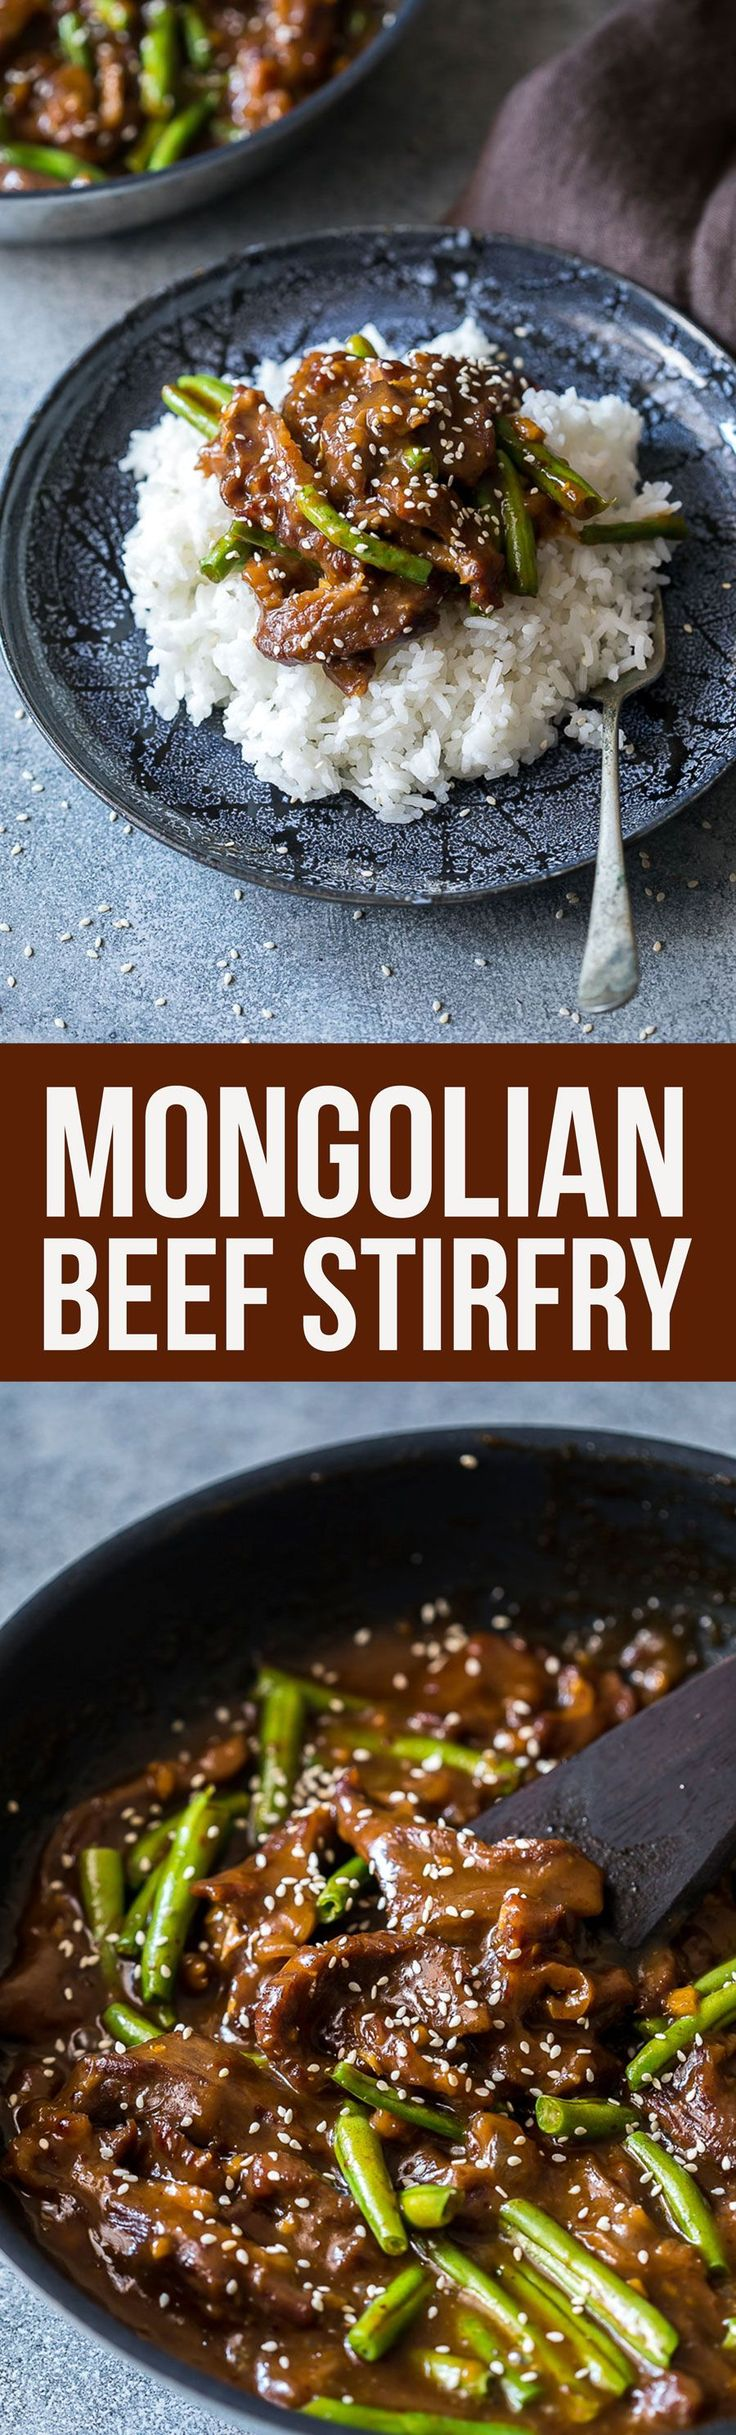 Best 25 ethnic food recipes ideas on pinterest east indian food this mongolian beef is the best ever sticky sauce delicious beef and oh so ethnic food recipesretro forumfinder Choice Image